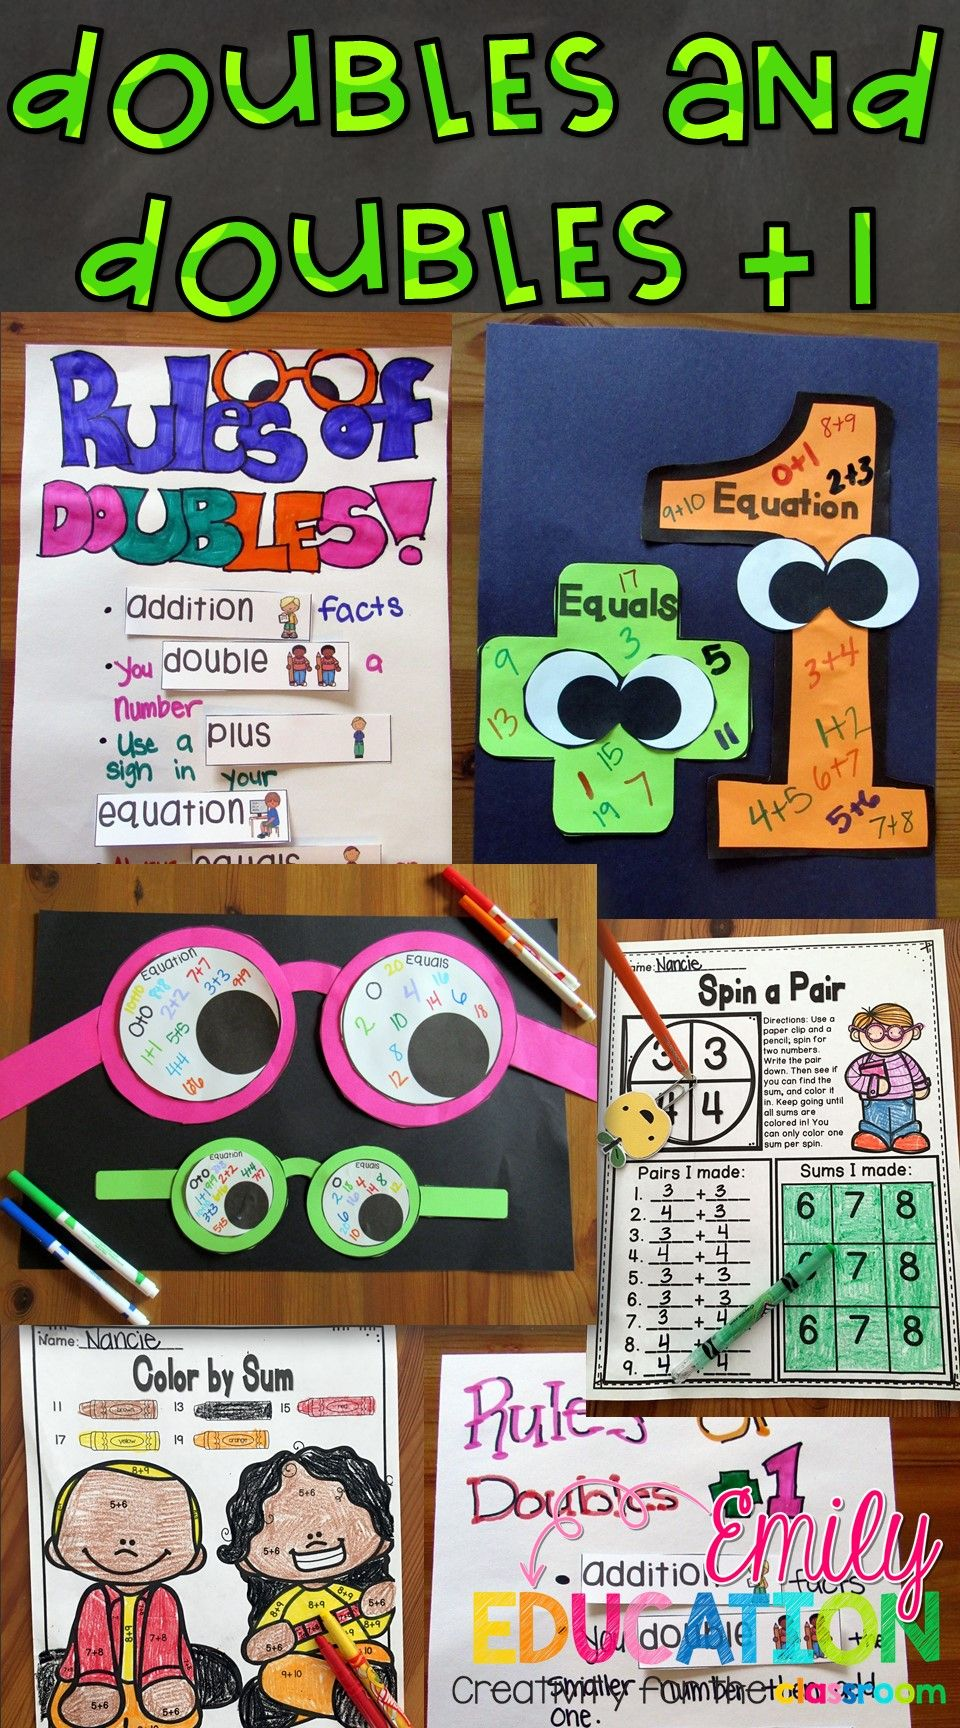 Doubles And Doubles Plus One Addition Facts Activities And